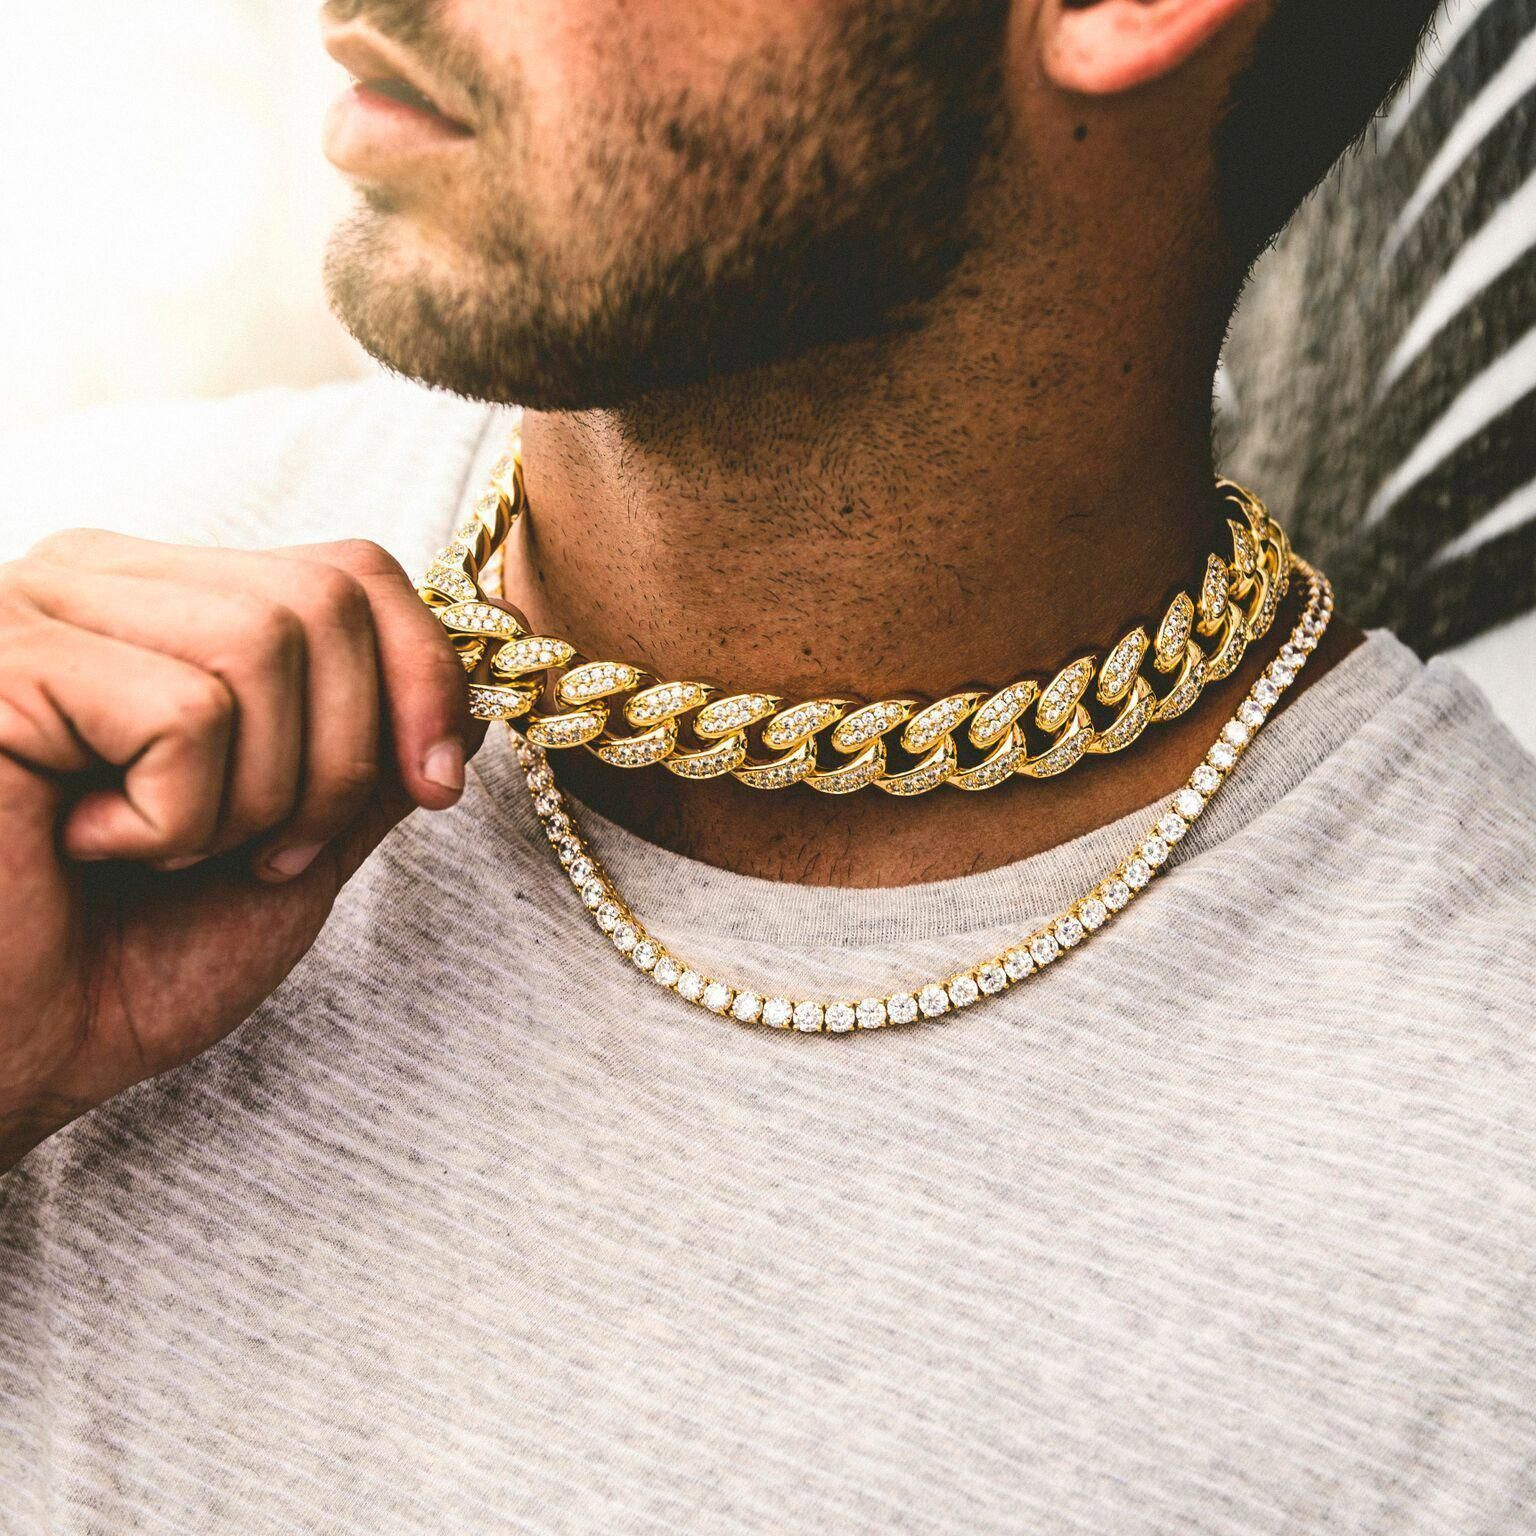 5mm Tennis Chain 19mm Cuban Choker Bundle Goldchains Gold Chains For Men Mens Jewelry Necklace Chains For Men